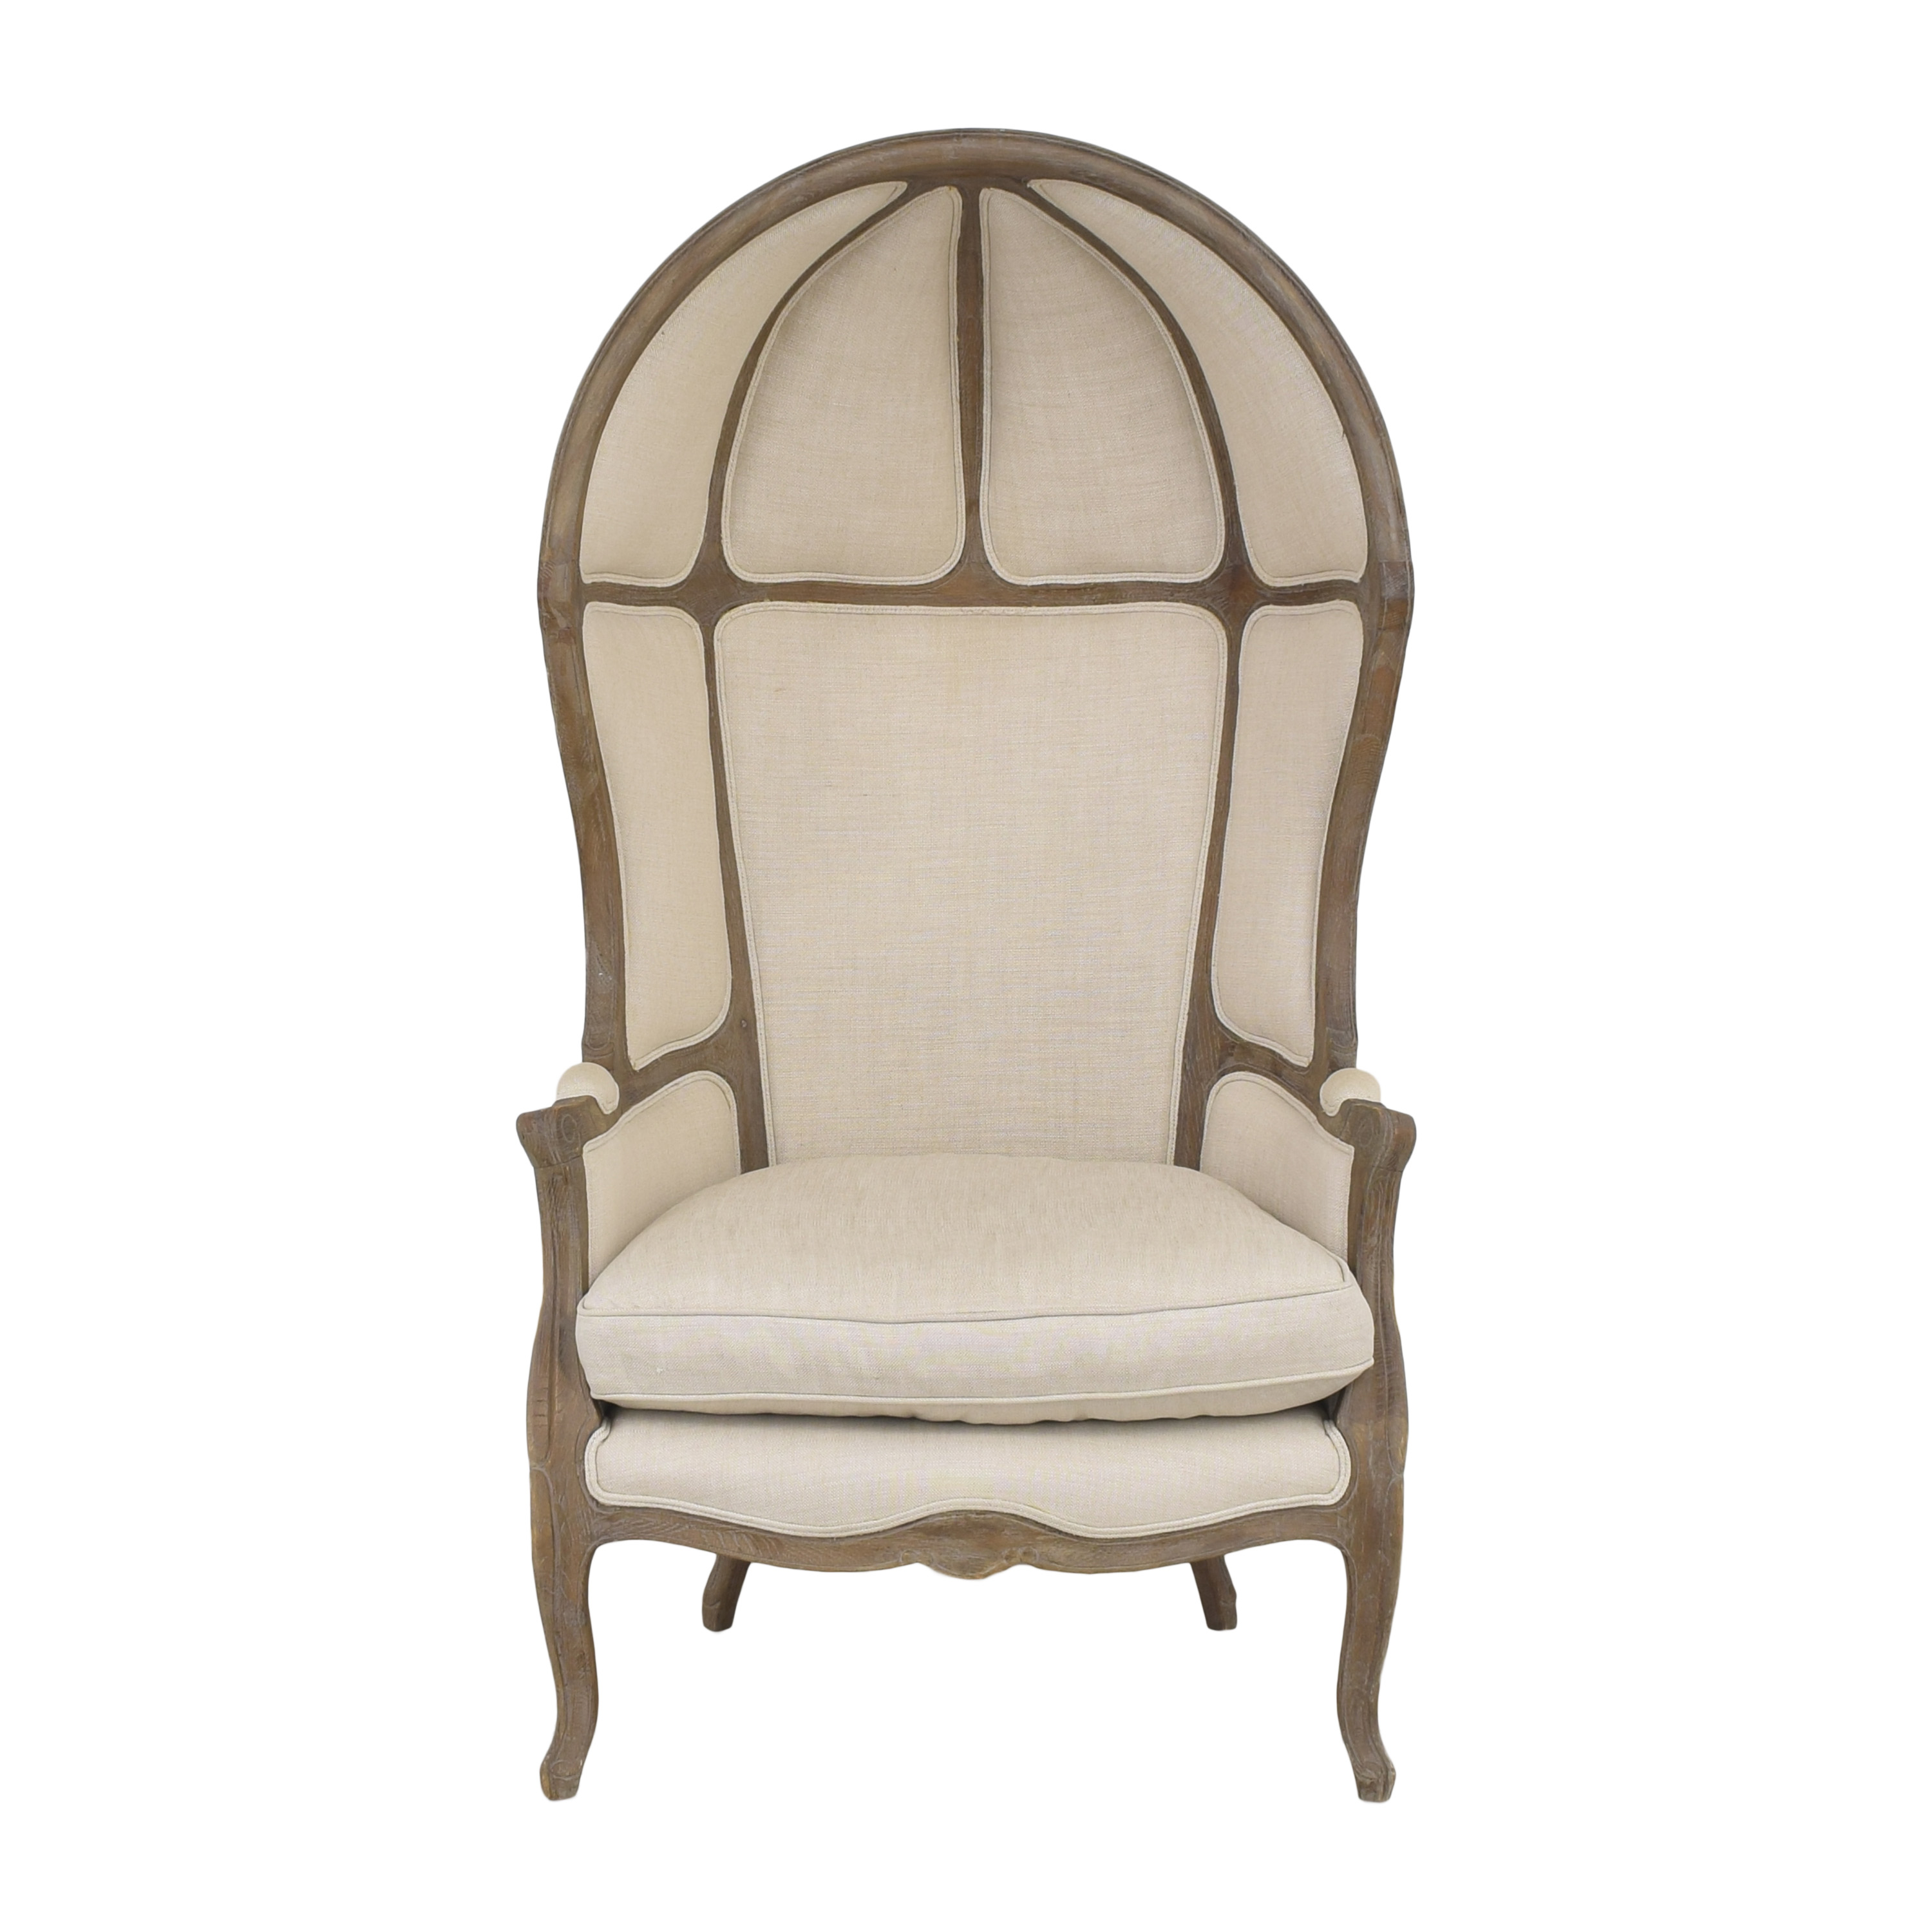 Restoration Hardware Restoration Hardware Versailles Burlap-Backed Chair used